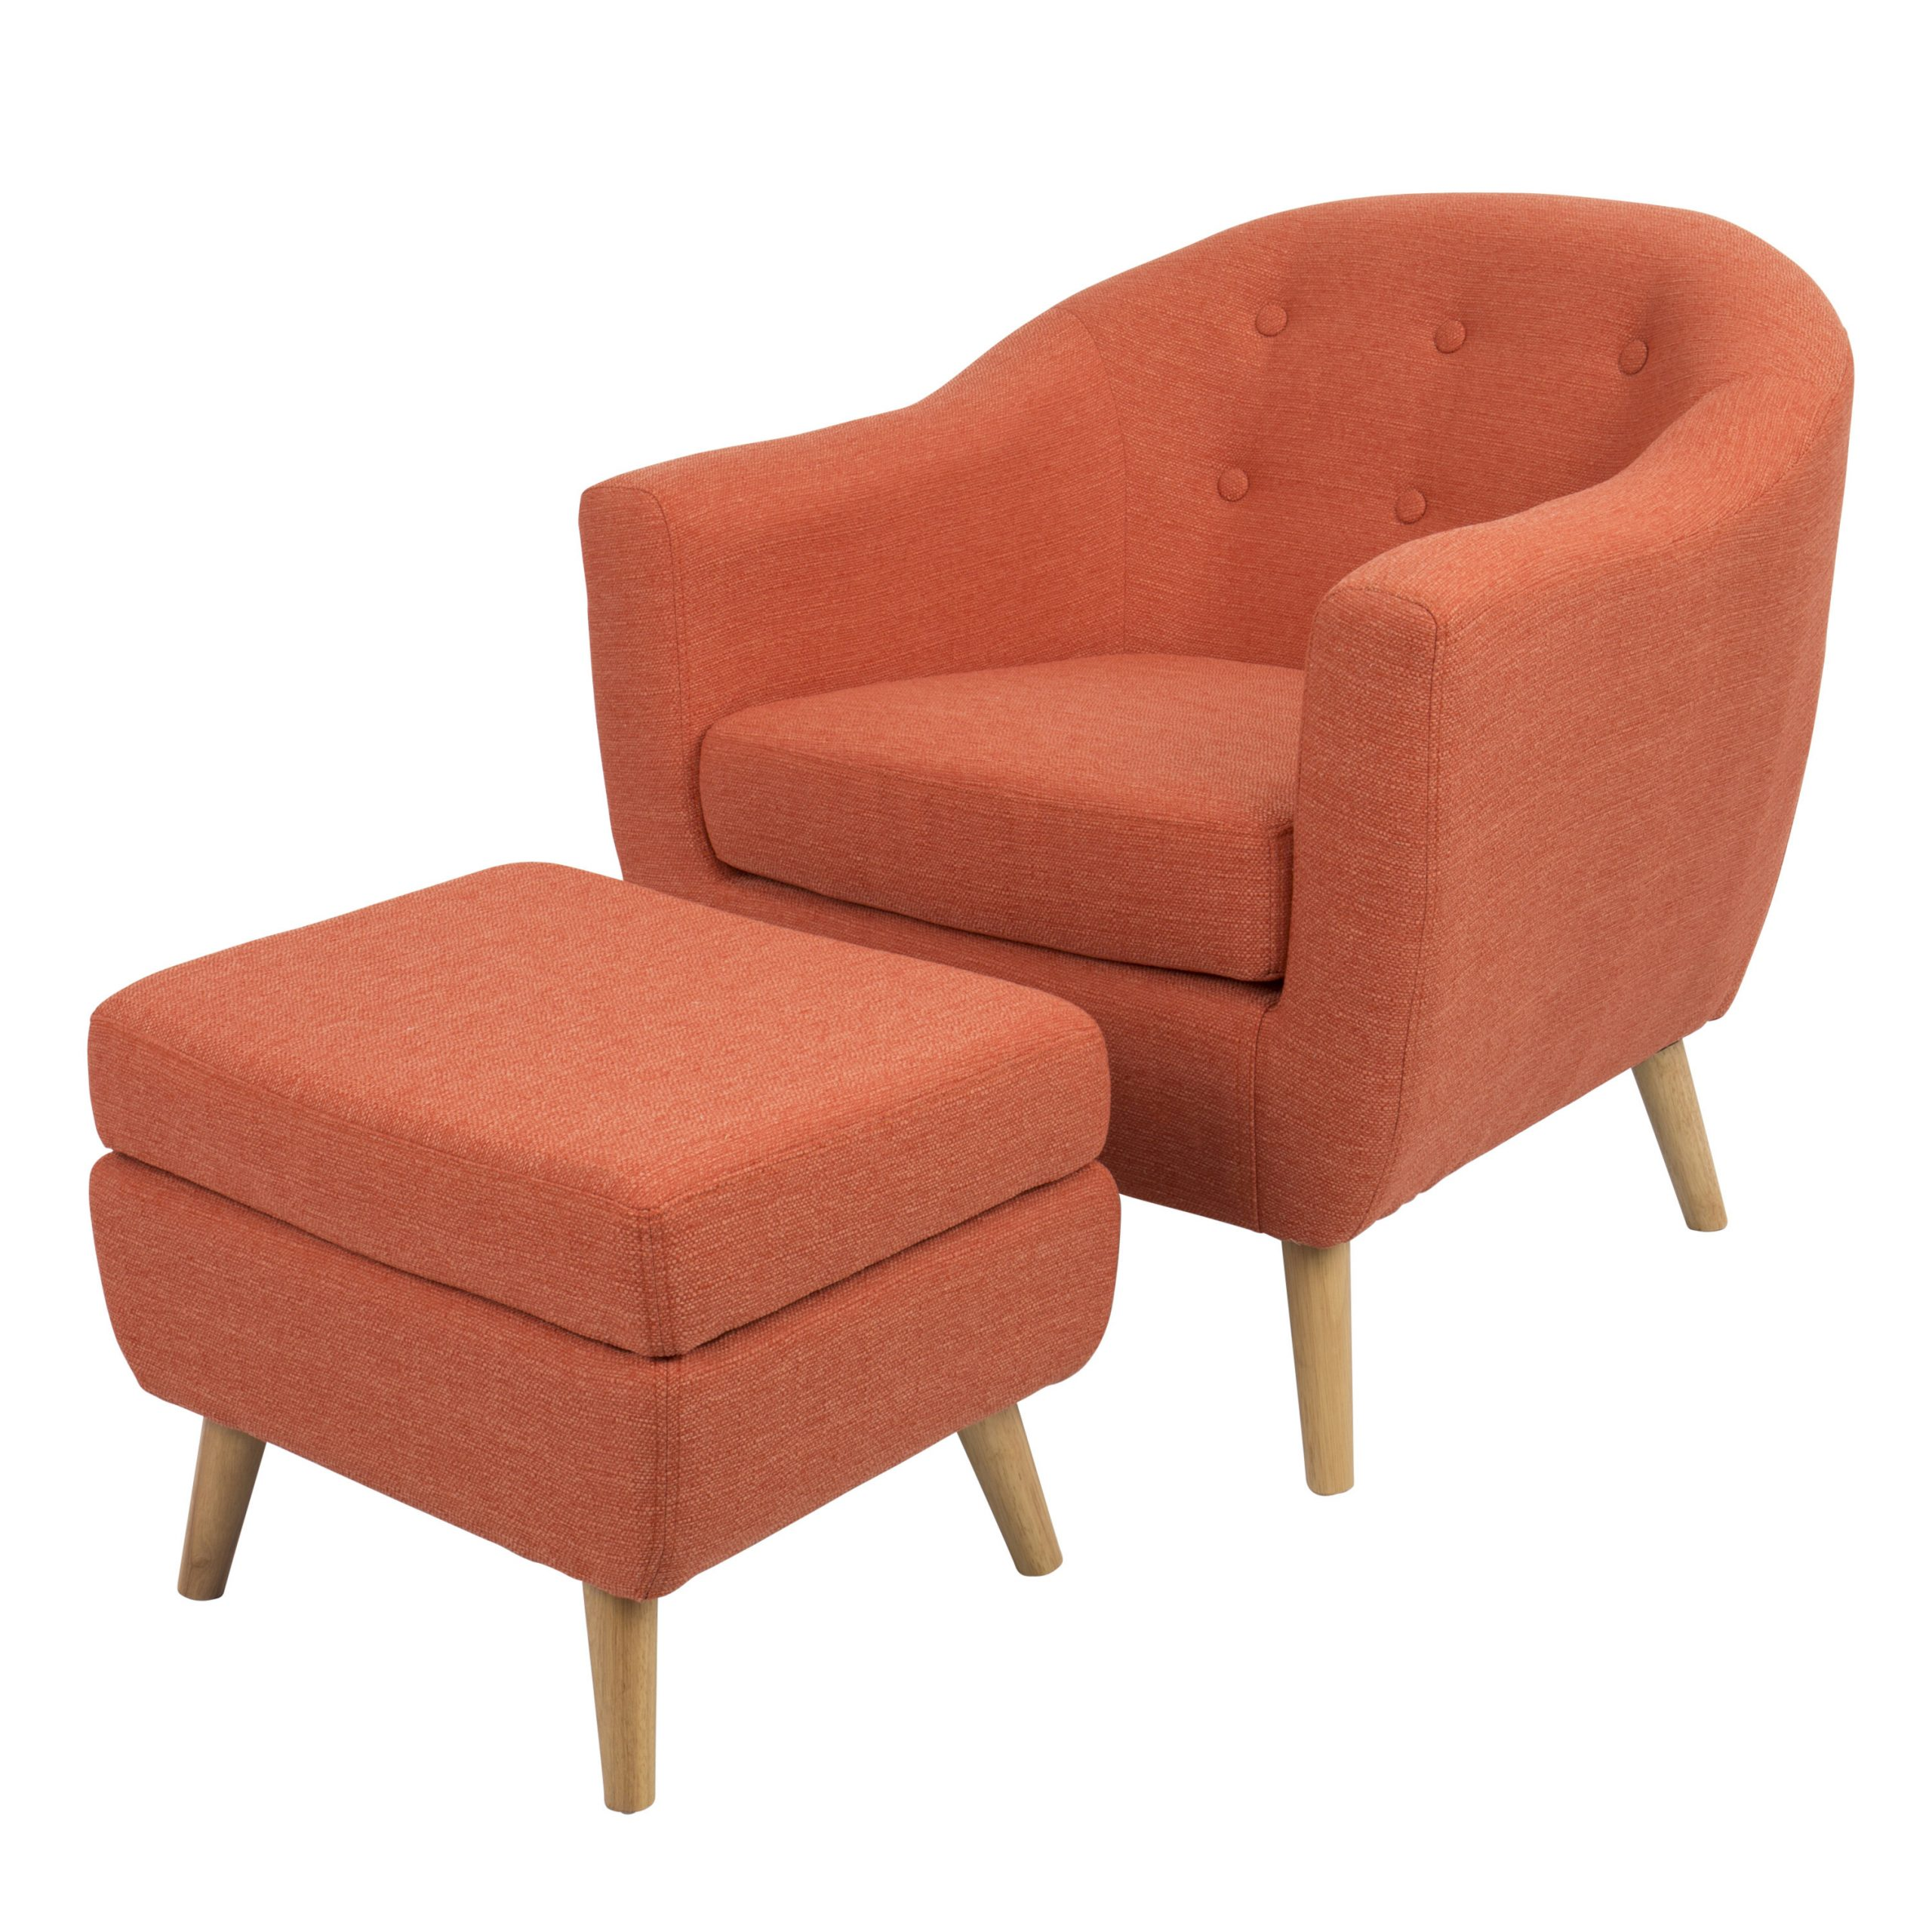 Navin Barrel Chairs Within Well Liked Barrel Mid Century Modern Accent Chairs You'll Love In (View 6 of 20)